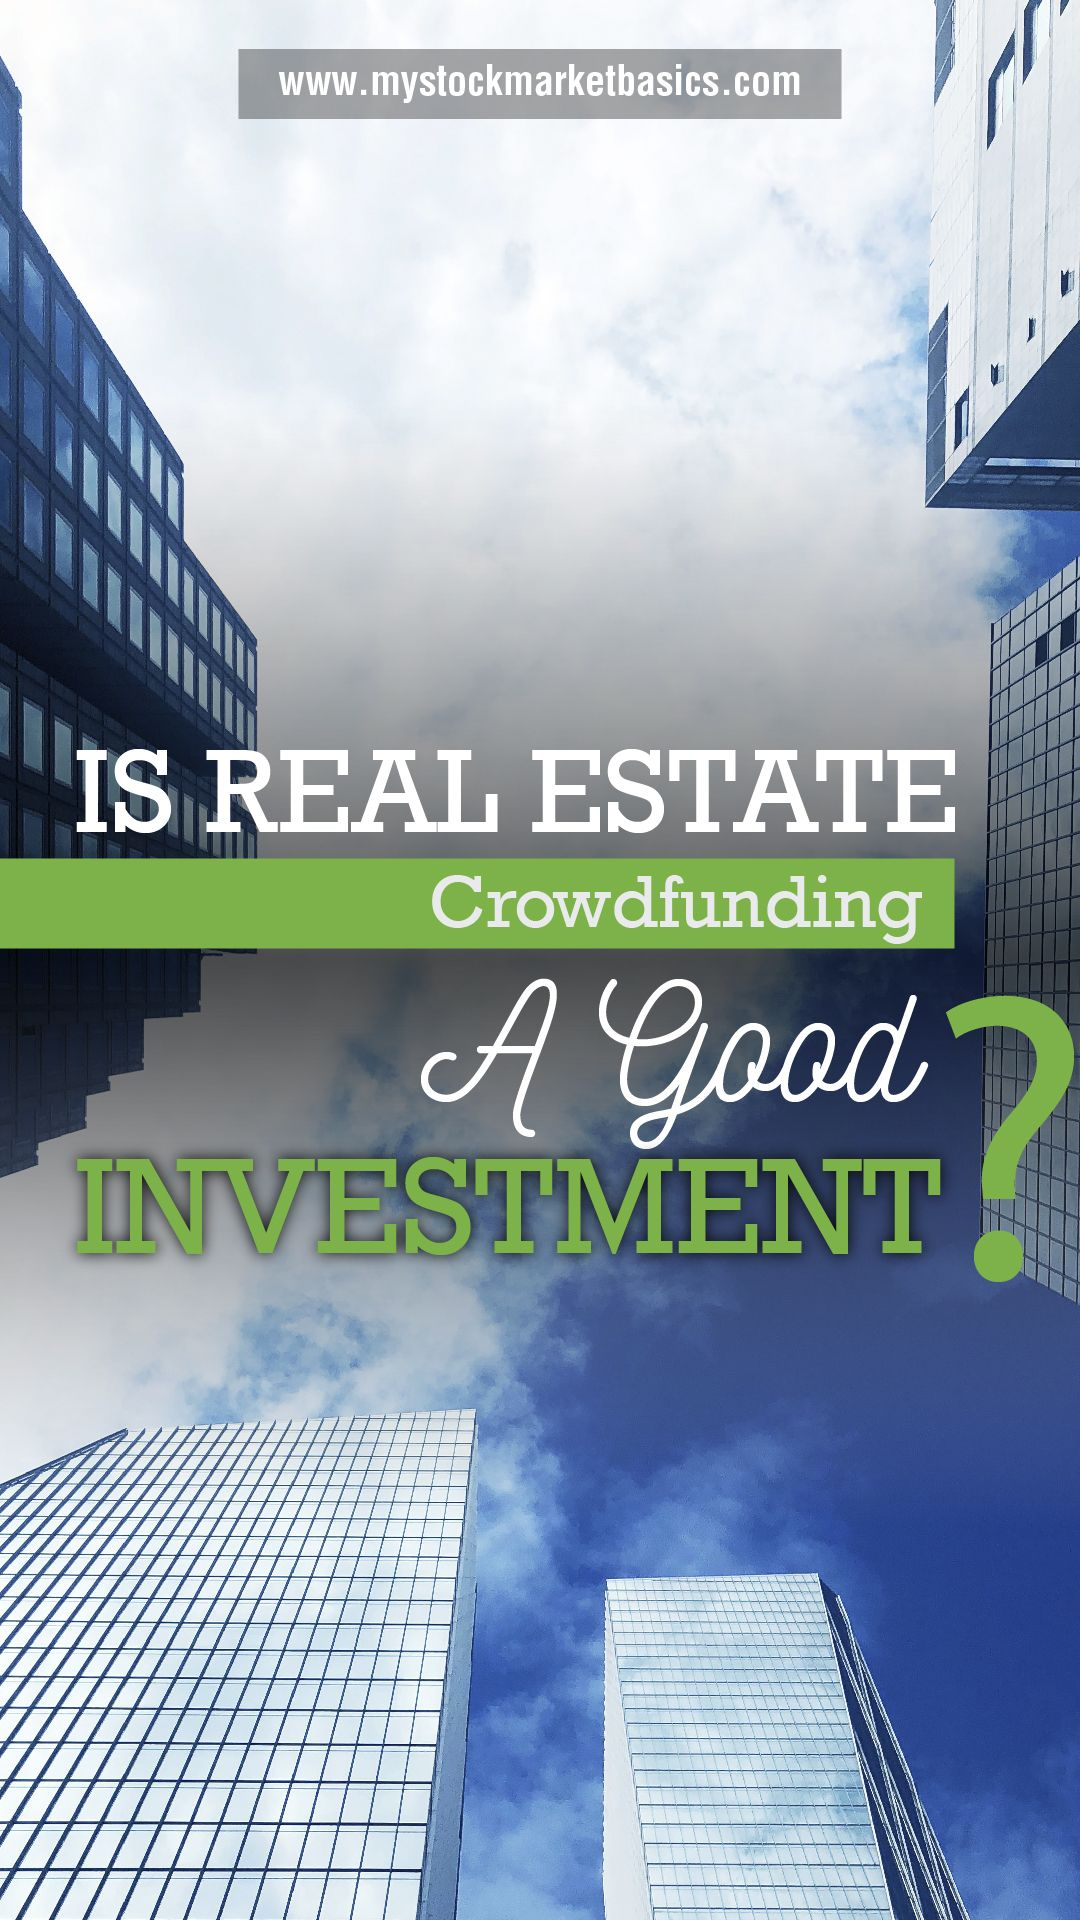 Is real estate crowdfunding a good investment in 2020